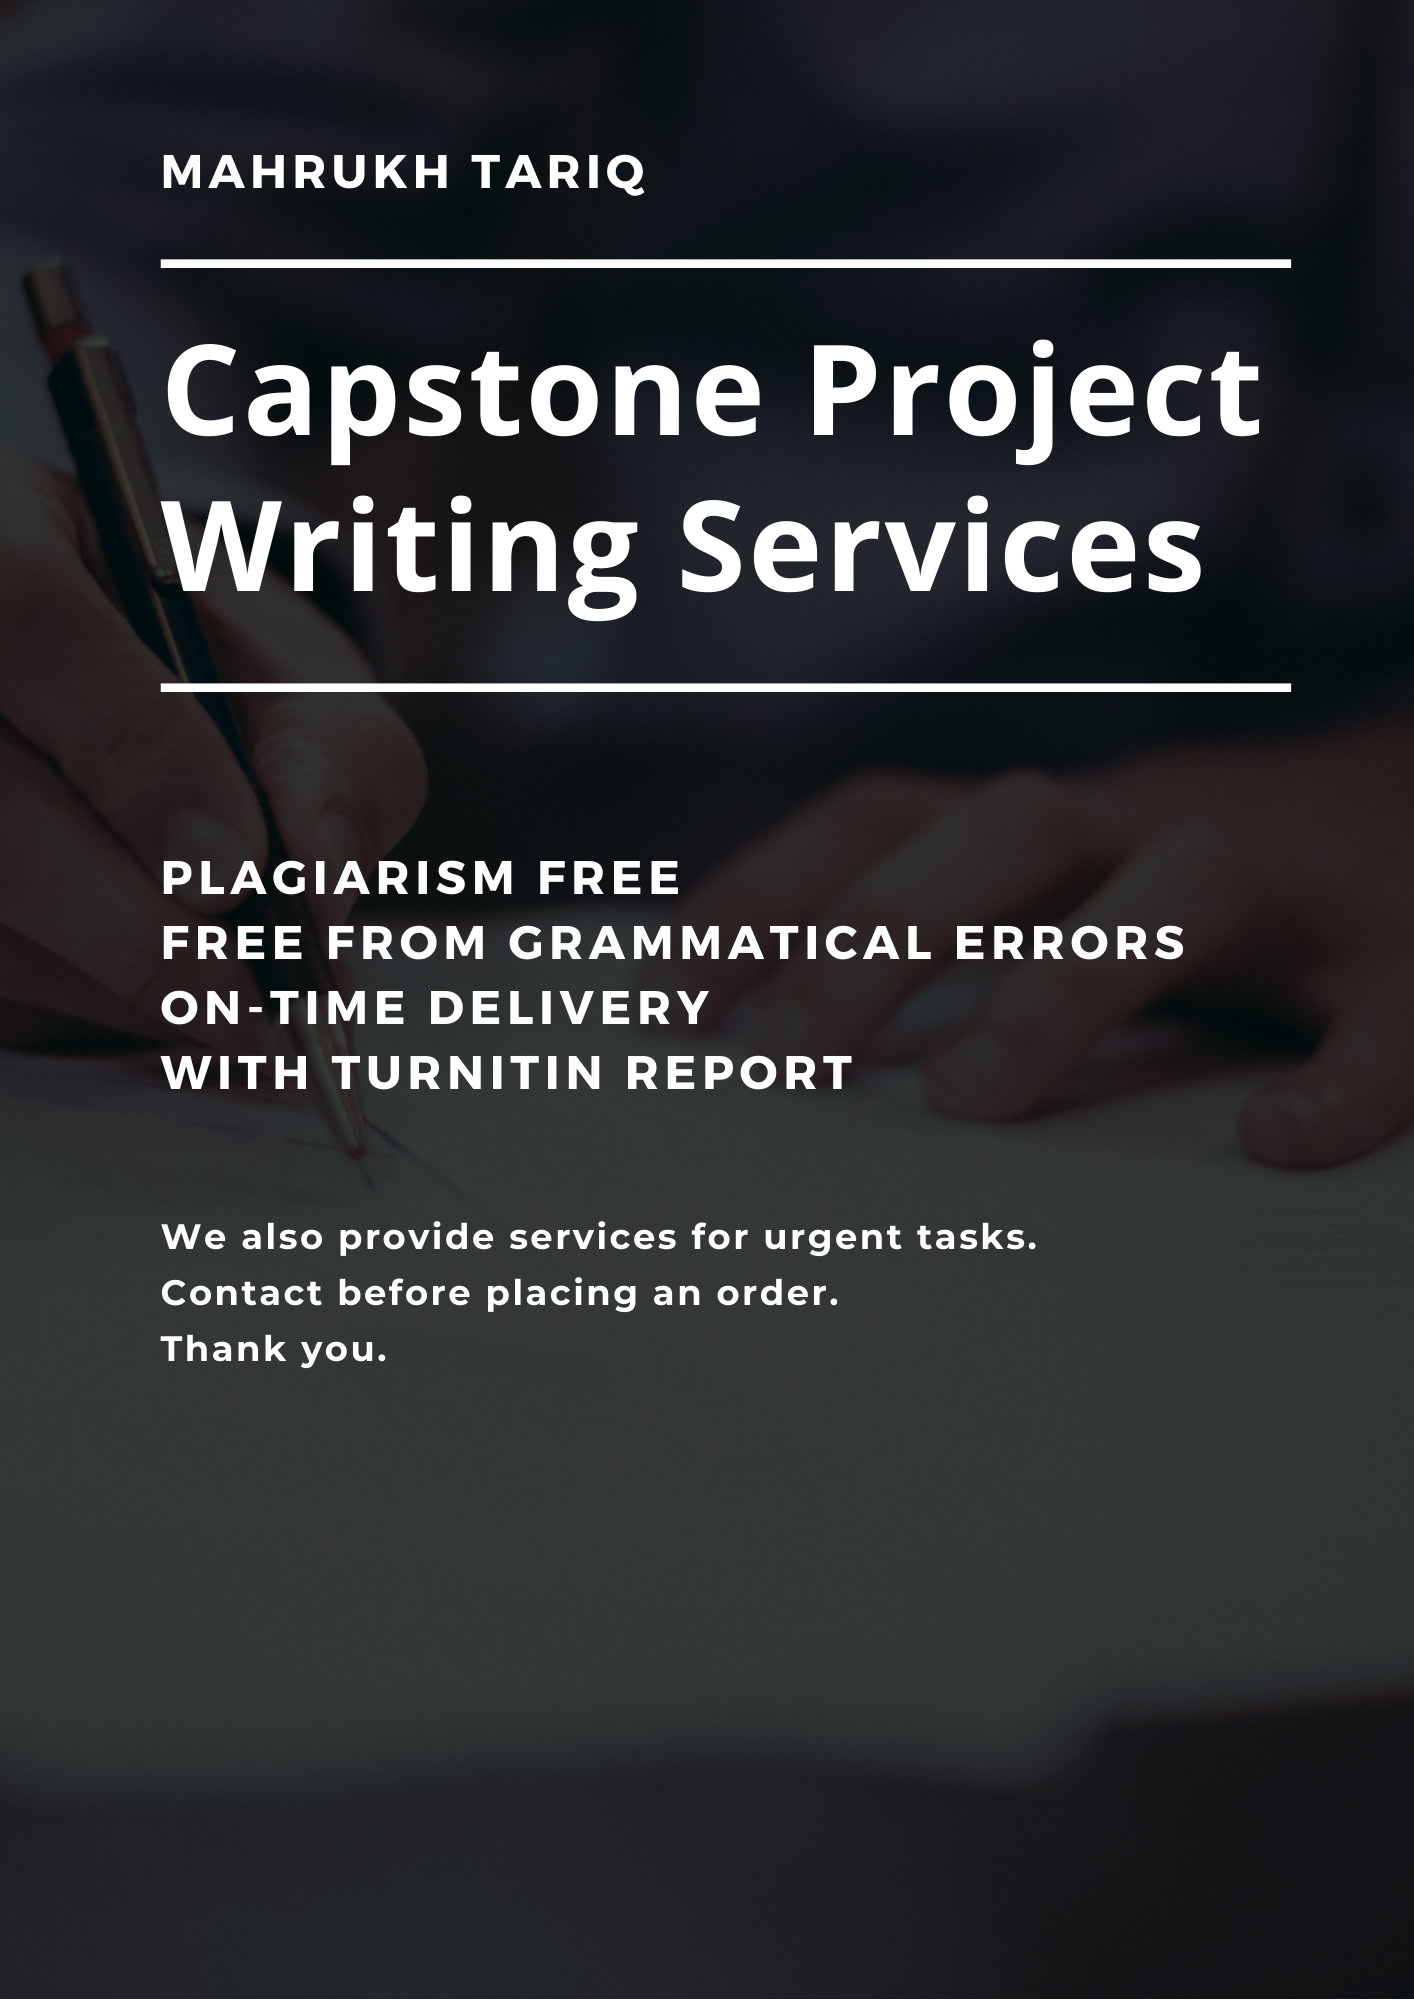 Get Rid of need help with my capstone project  Once and For All